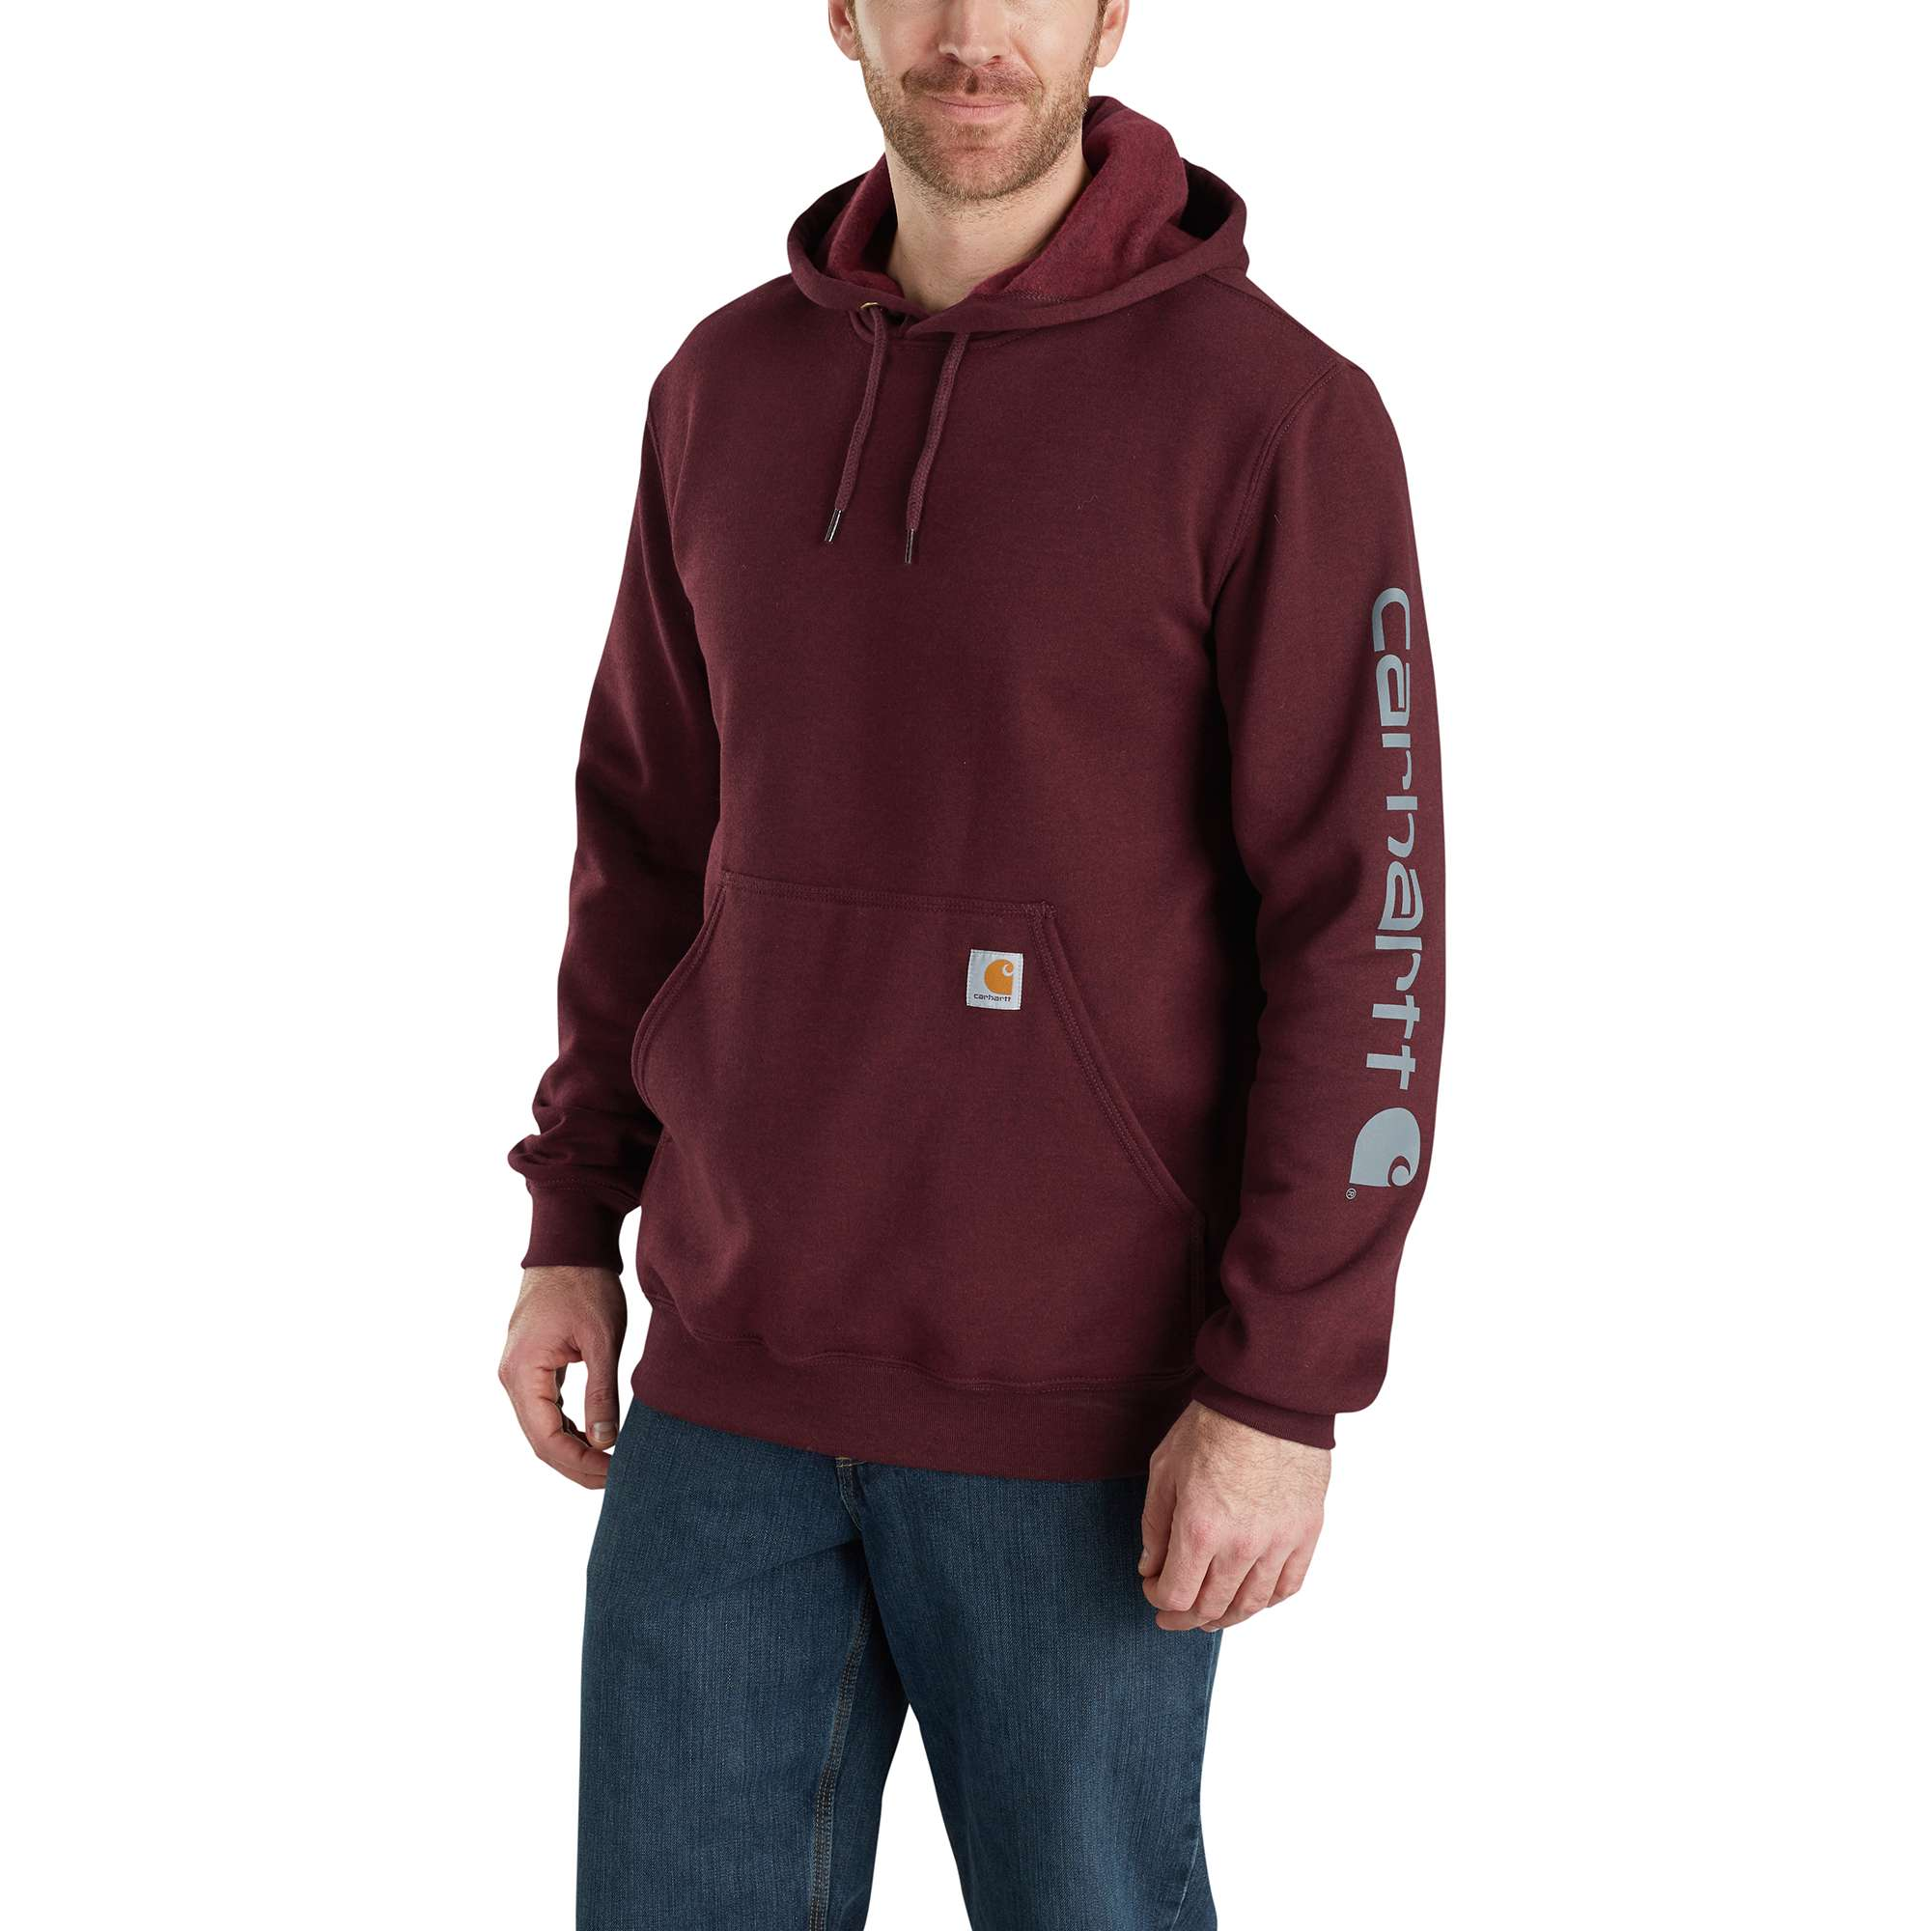 Men's Midweight Signature Logo Sleeve Hooded Sweat, Dk Red,Wine,Ruby,Burgandy, swatch